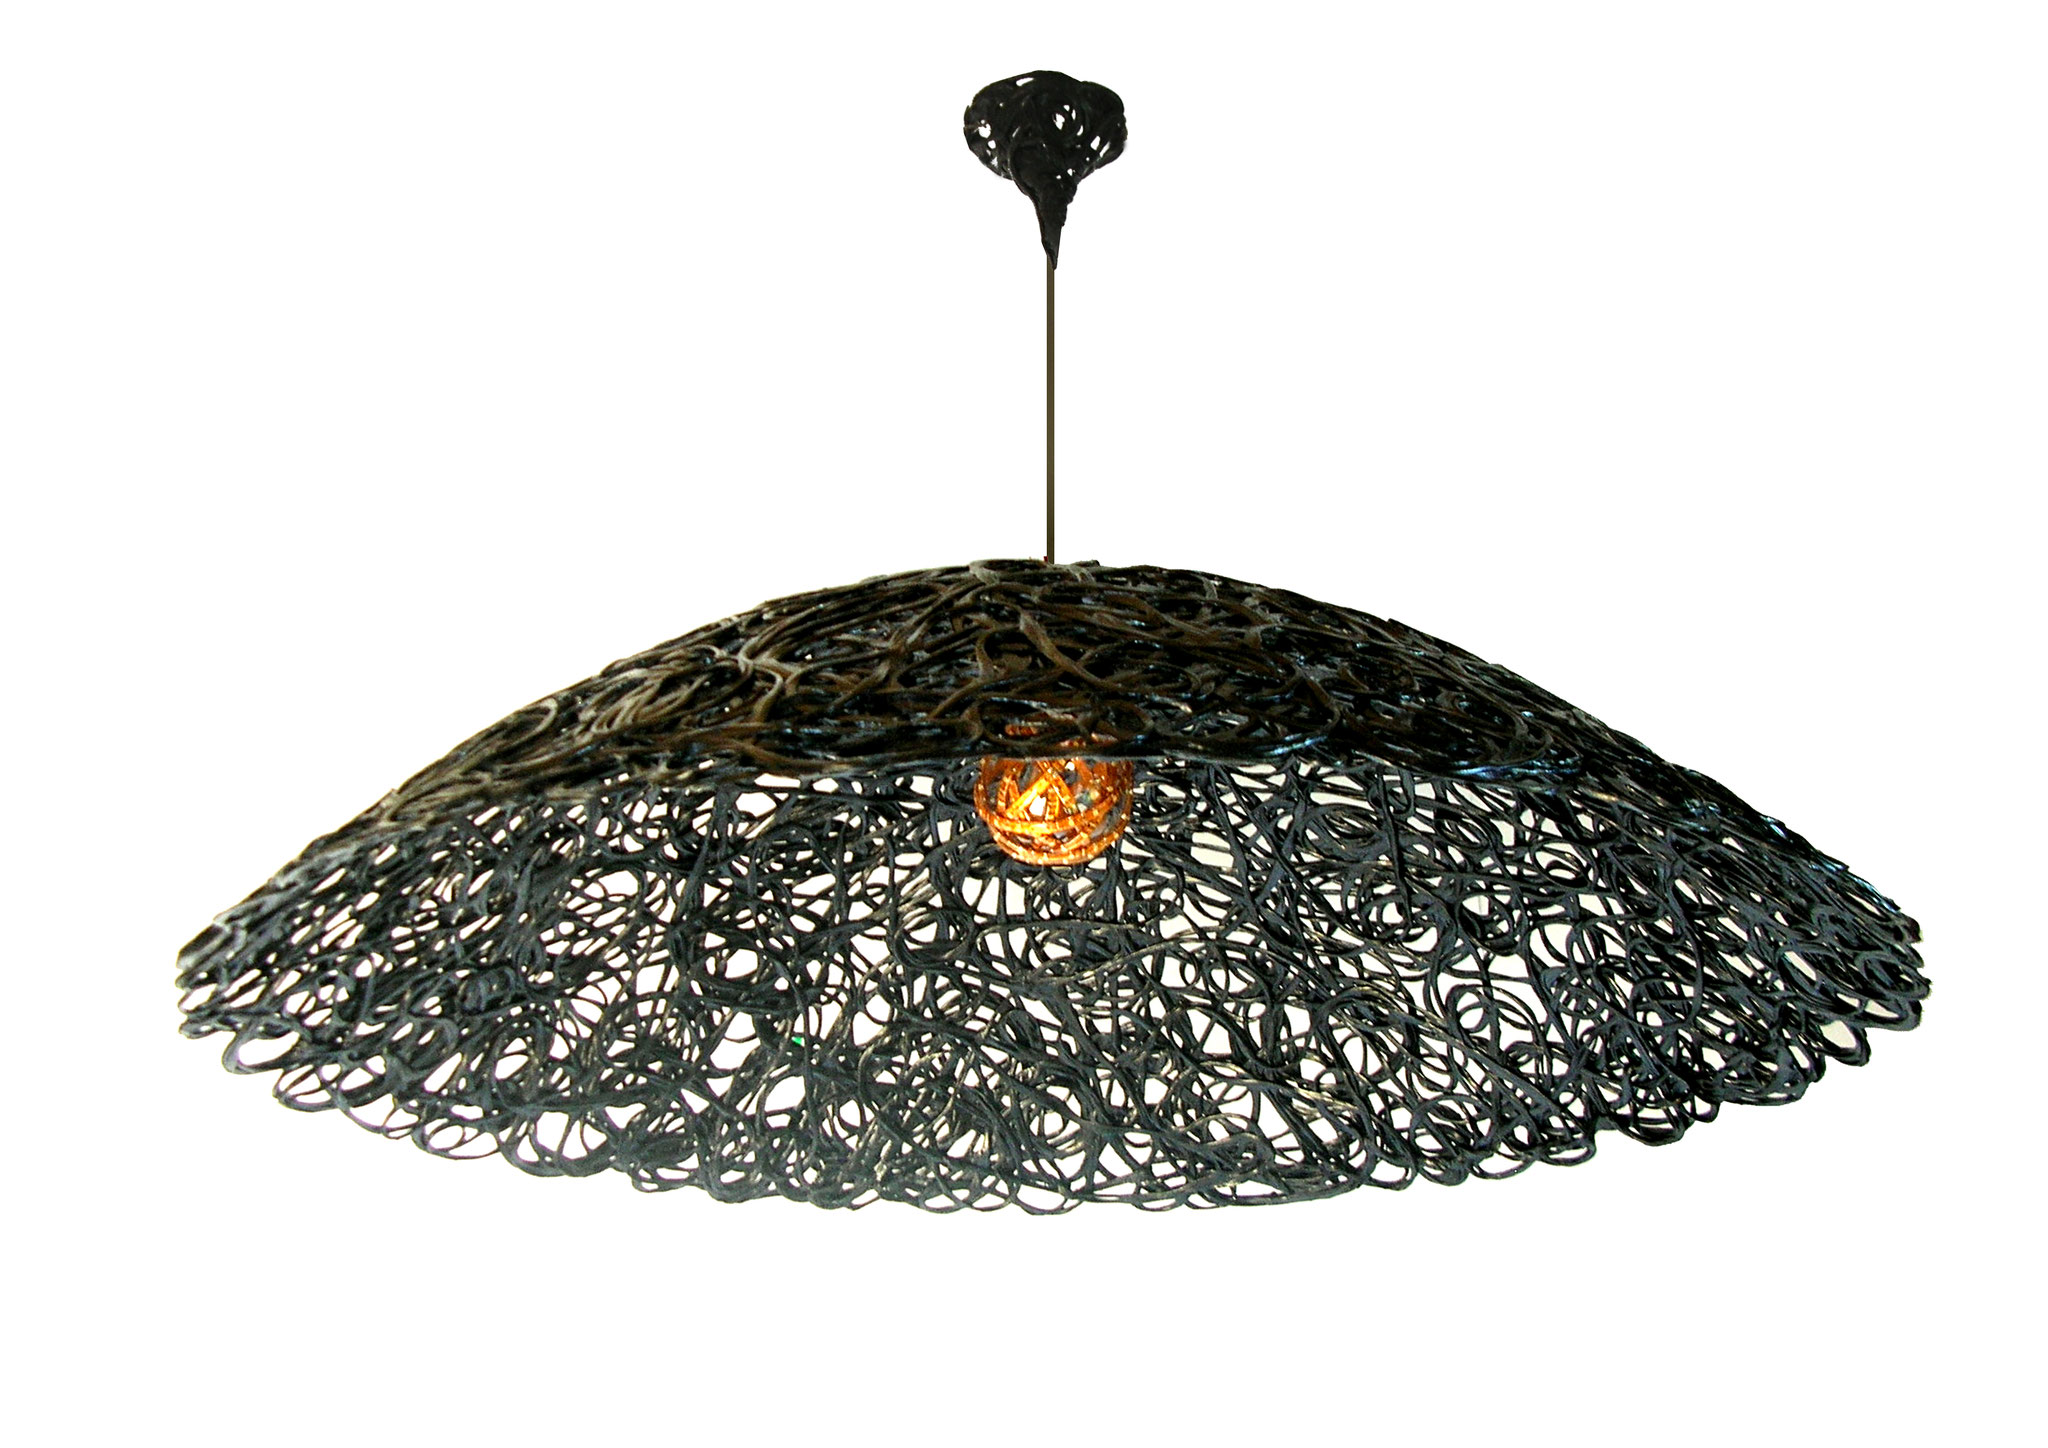 Constructive expressionism ceiling lamp, made out of carbon fiber and epoxy resin, H: 30cm, W: 110cm, L: 110cm